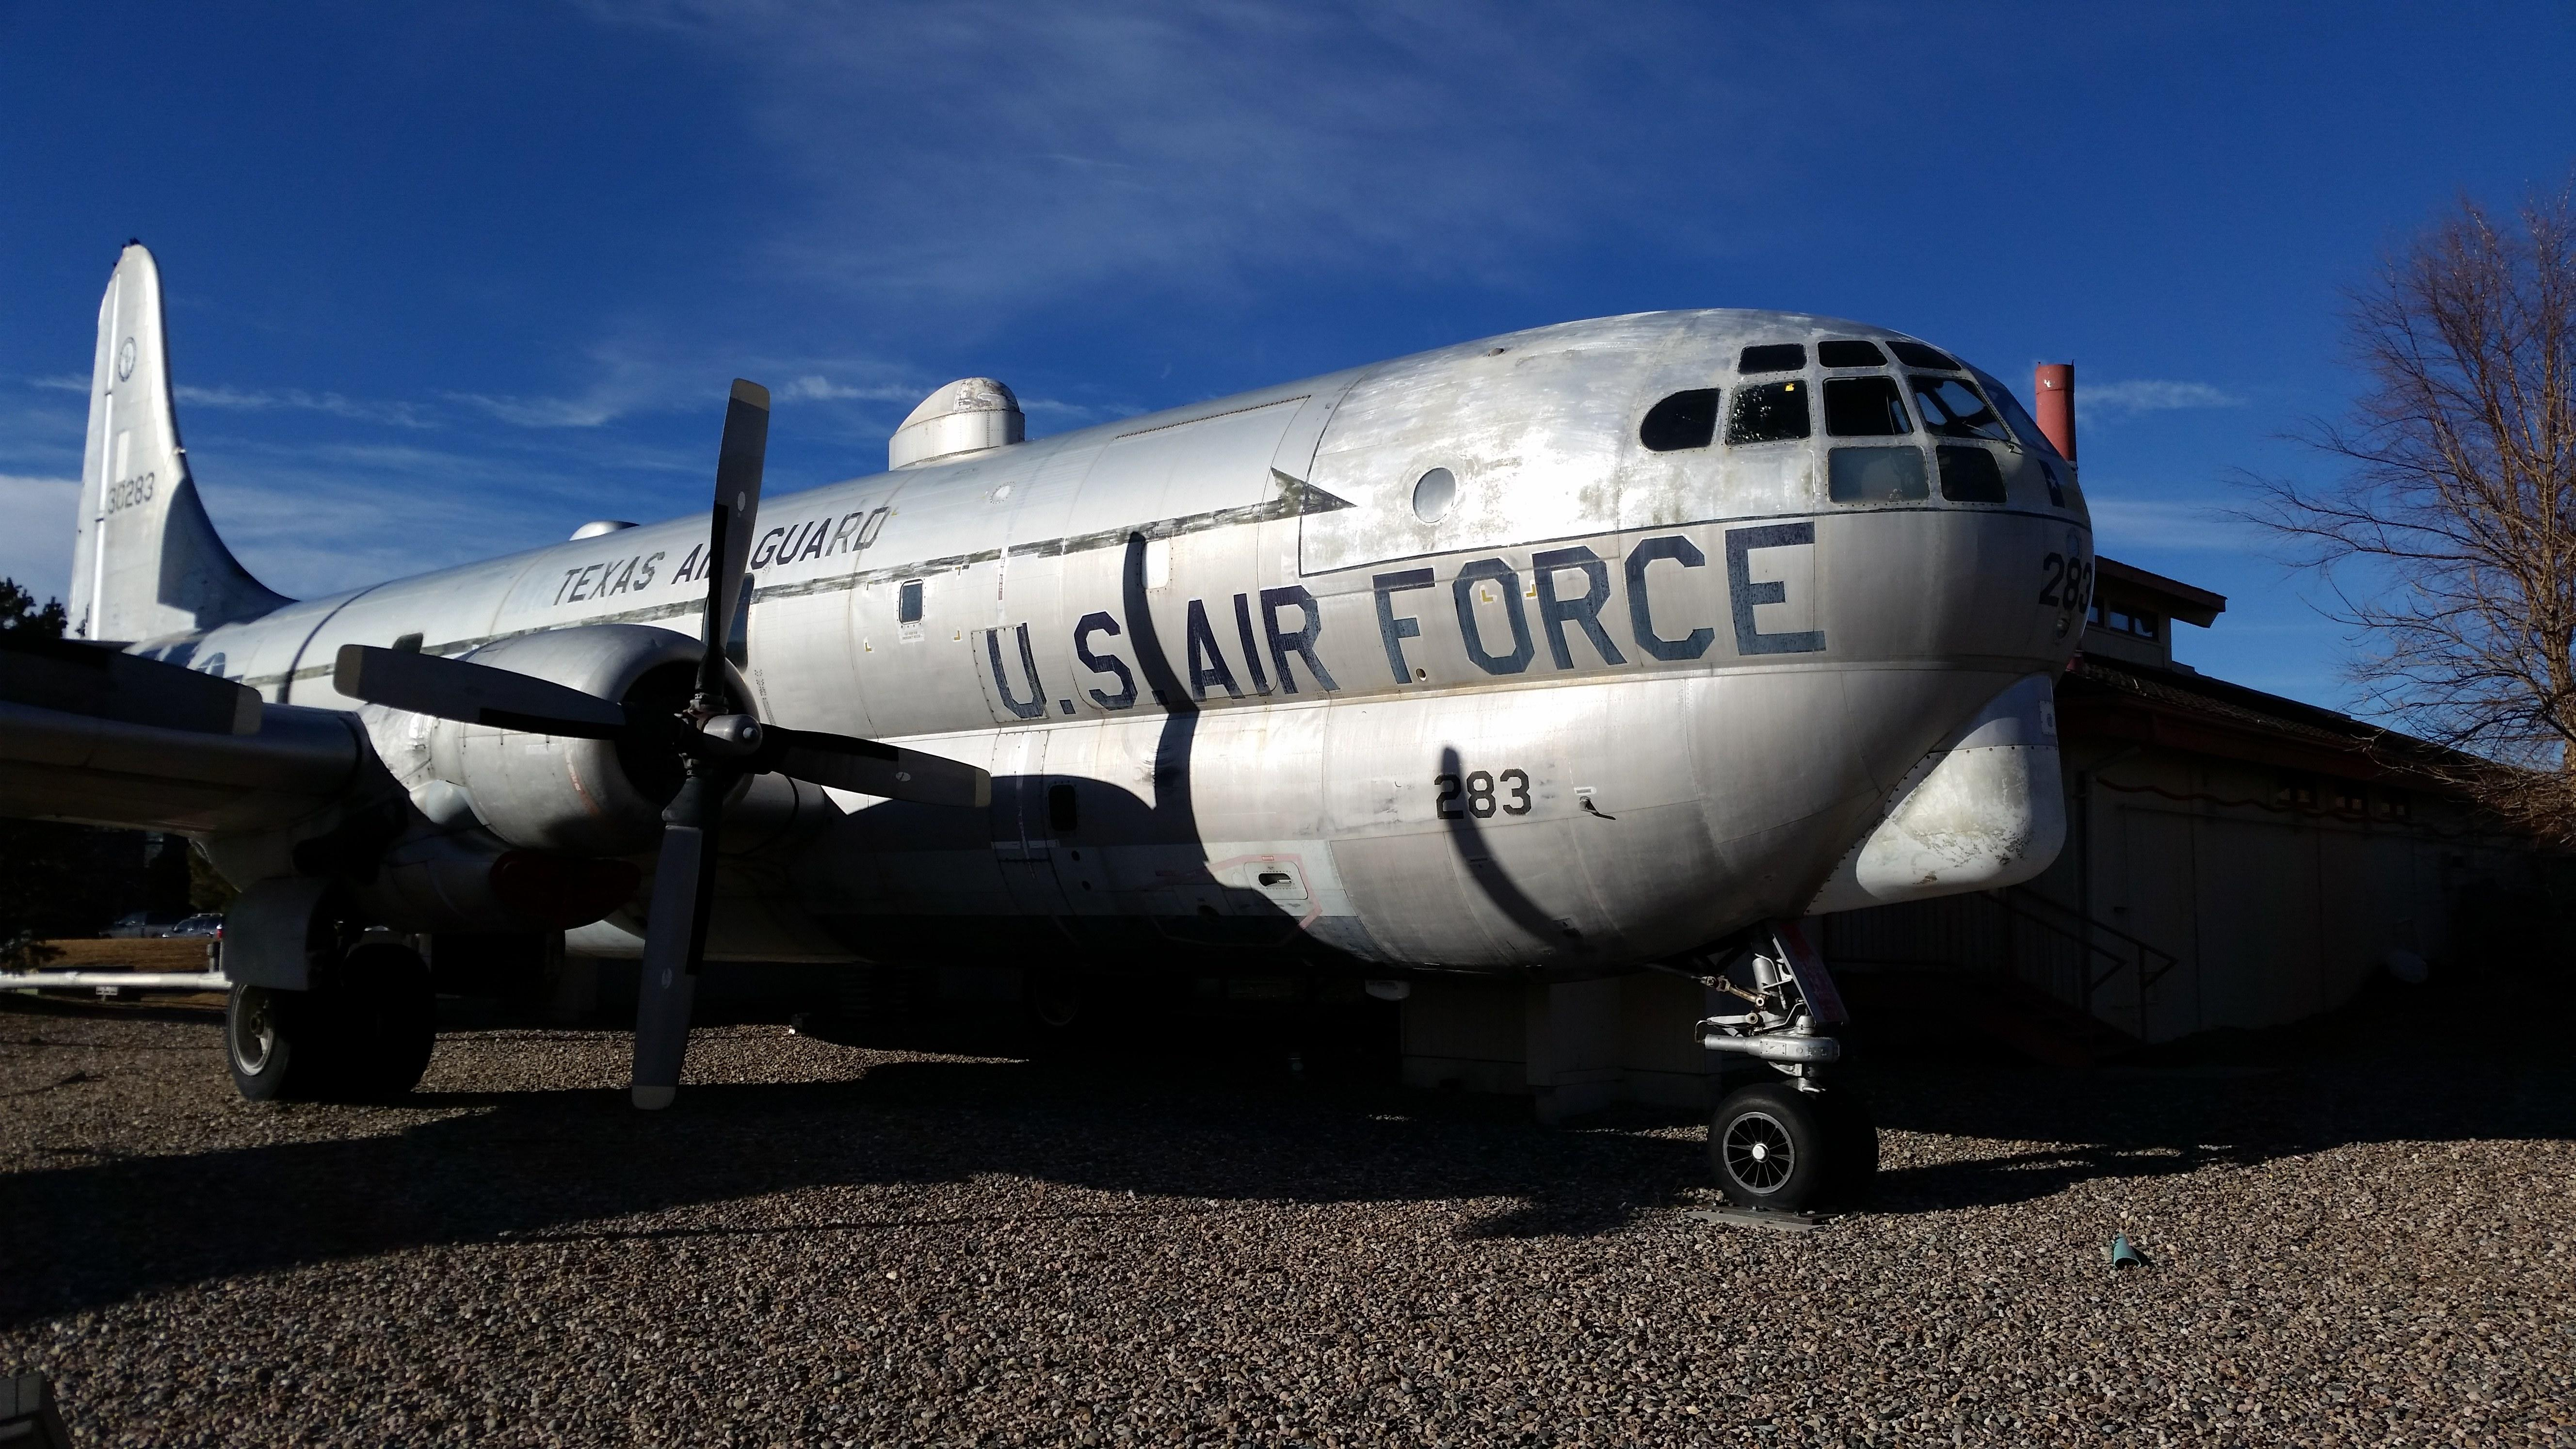 """Airplane food never tasted so good. Housed inside a KC-97 Boeing built in 1953, The Airplane Restaurant can seat up to 42 patrons for lunch or dinner. Having traveled the world, the Boeing is now permanently wheels-down in Colorado Springs and serving up some American favorites. <a href=""""http://www.solosrestaurant.com/"""" rel=""""nofollow noopener"""" target=""""_blank"""" data-ylk=""""slk:solosrestaurant.com"""" class=""""link rapid-noclick-resp"""">solosrestaurant.com</a>"""